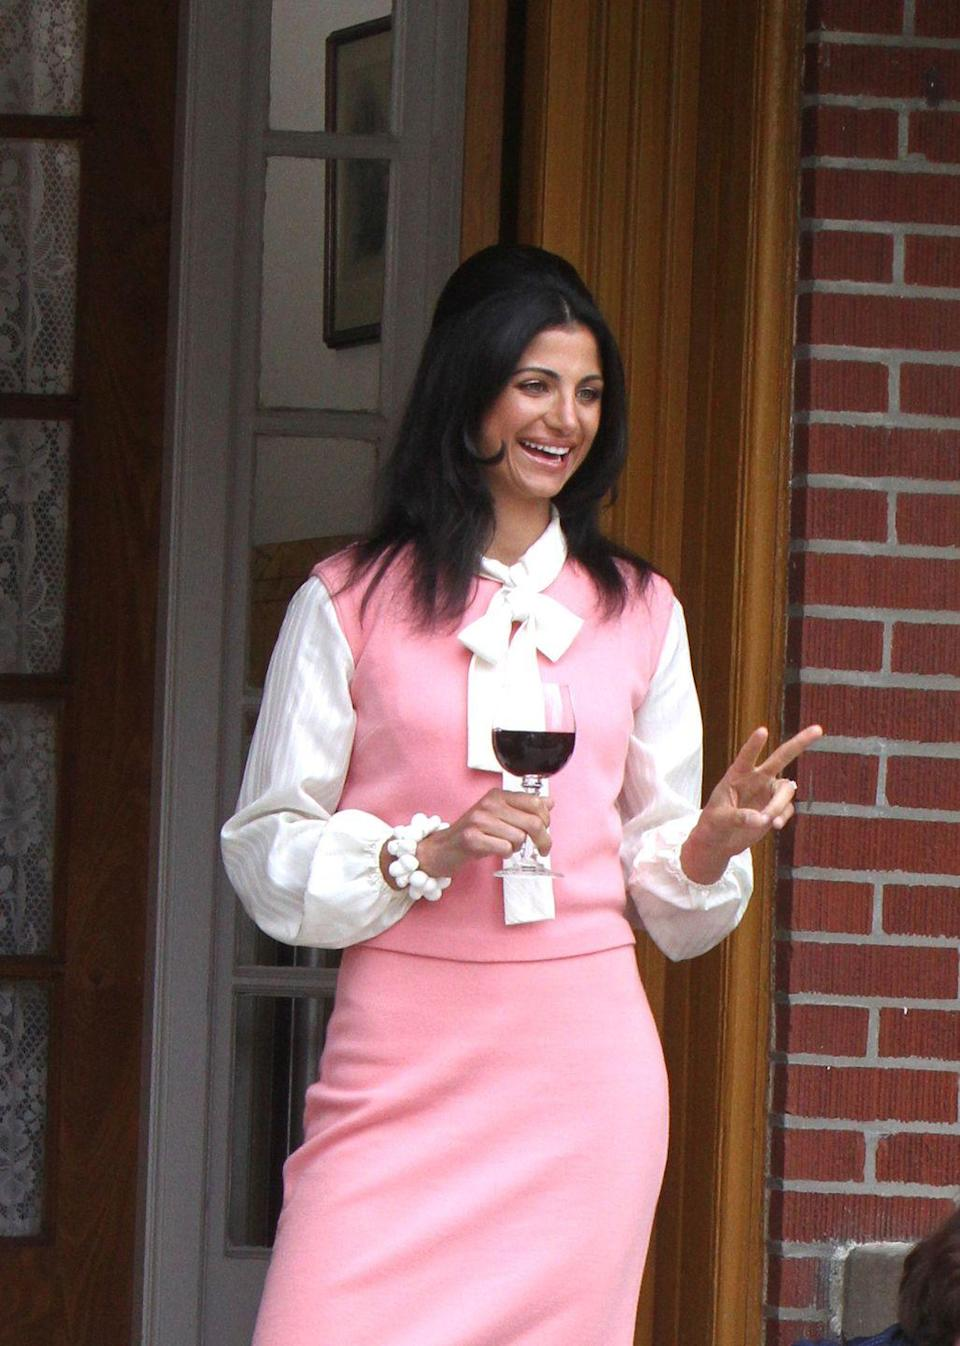 <p>Gabriella Piazza is seen on the set of <em>The Many Saints of Newark</em> on May 31, 2019 in New York City.</p>